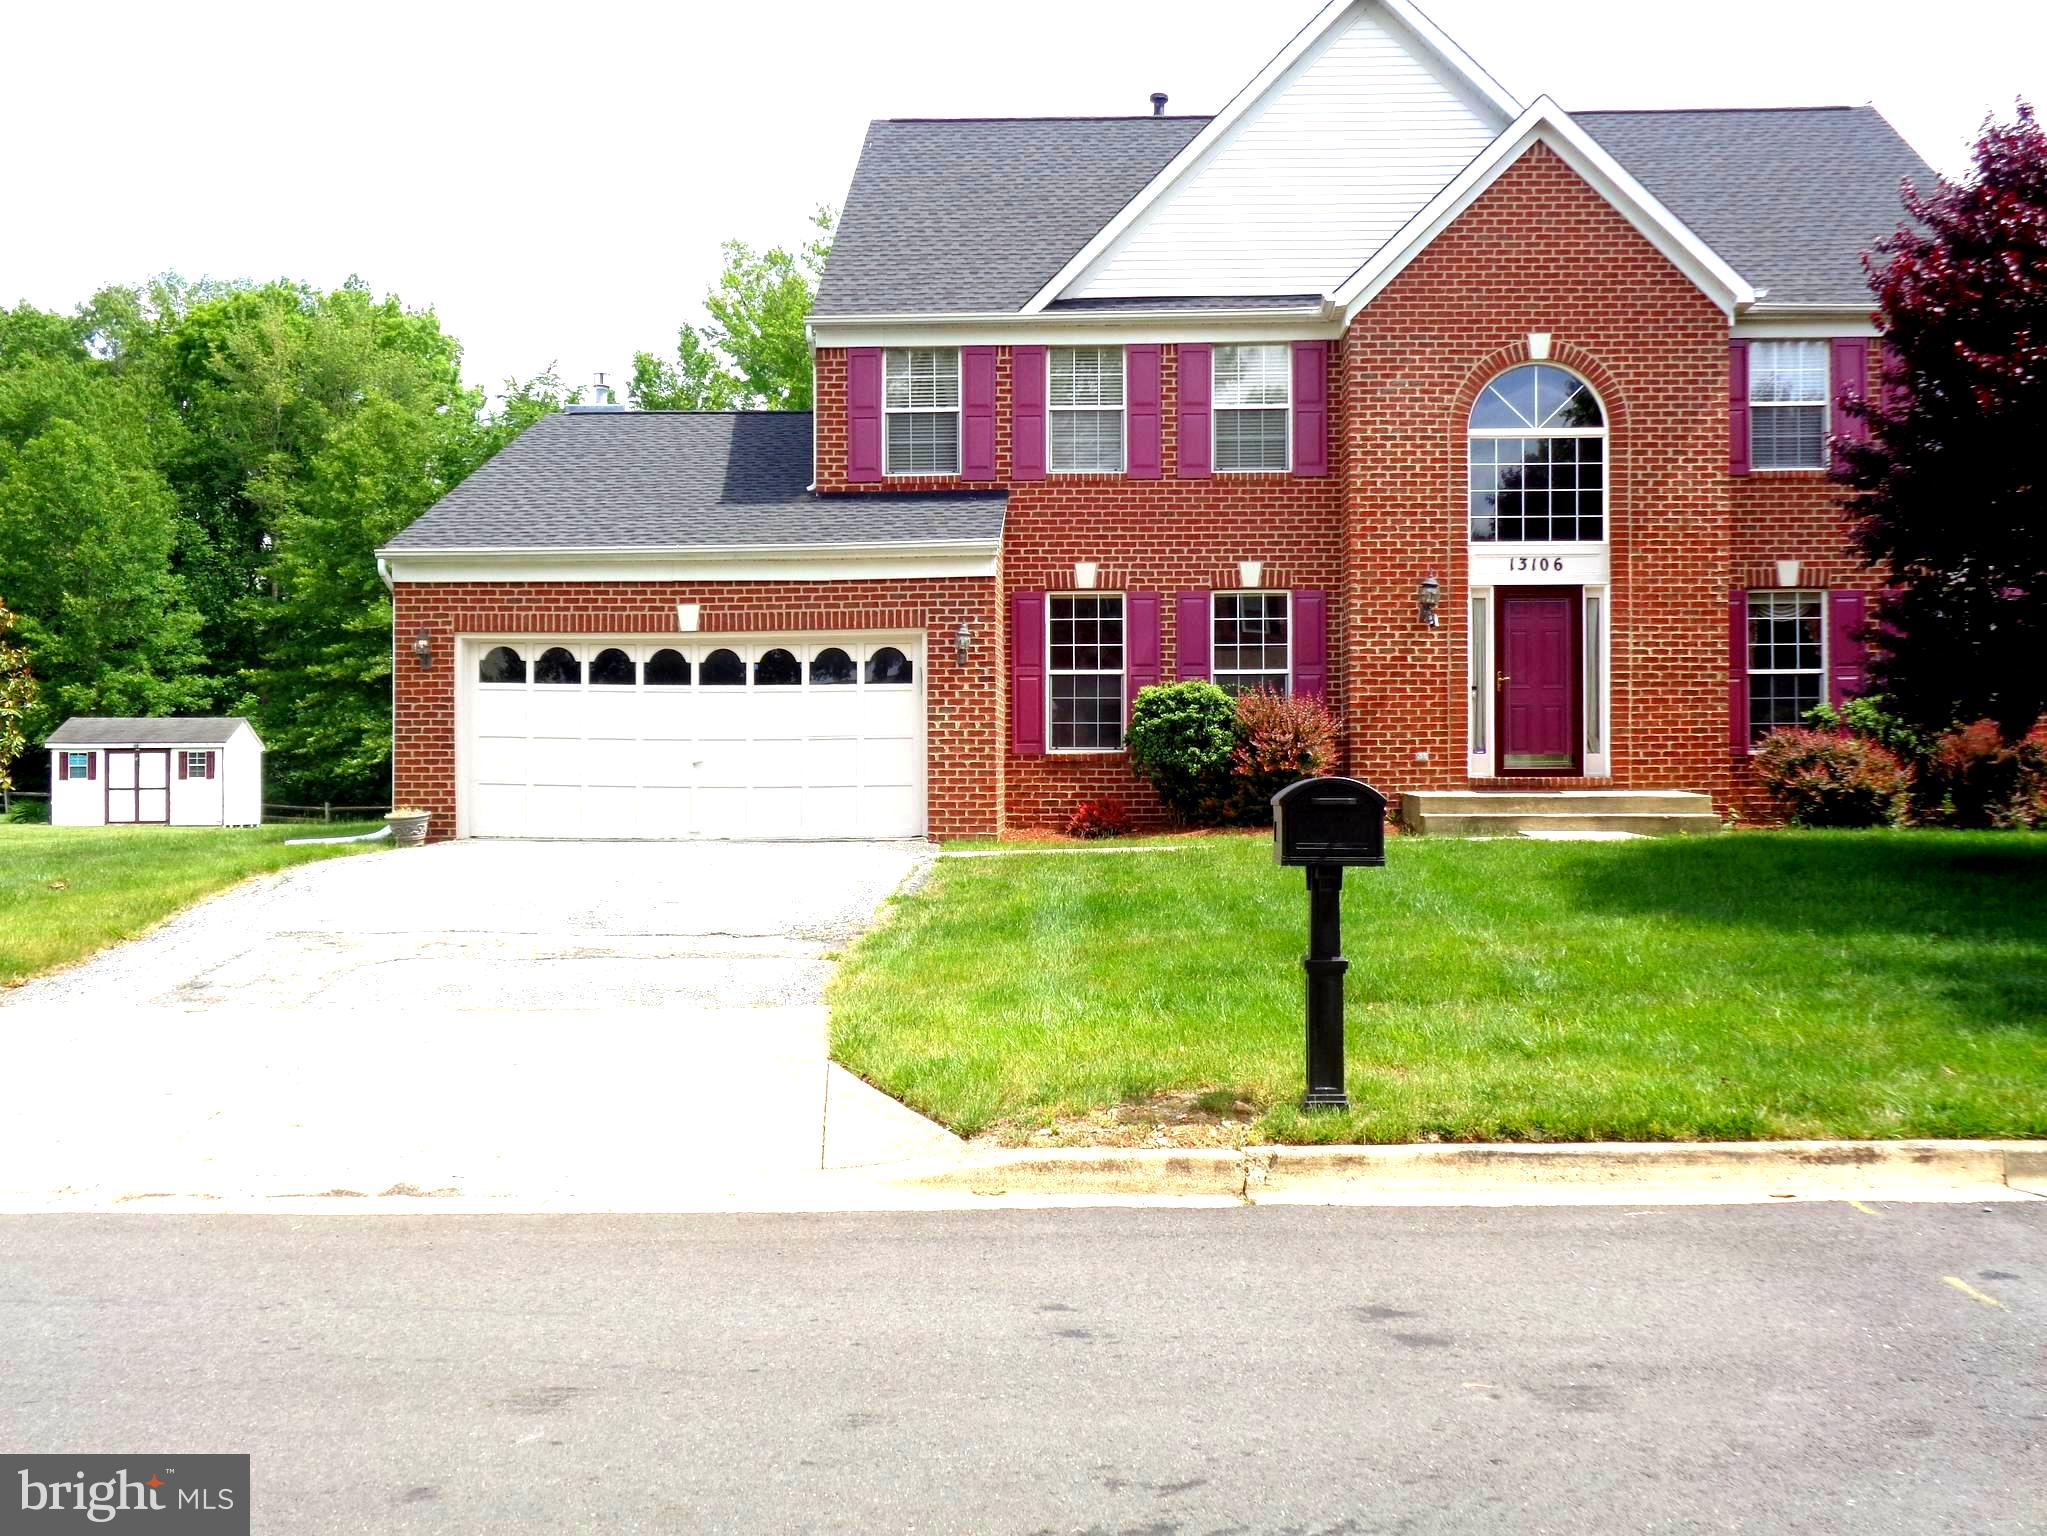 This 3006sq. ft. brick front sq ft Colonial is located on a quiet street leading to a cul-de-sac and